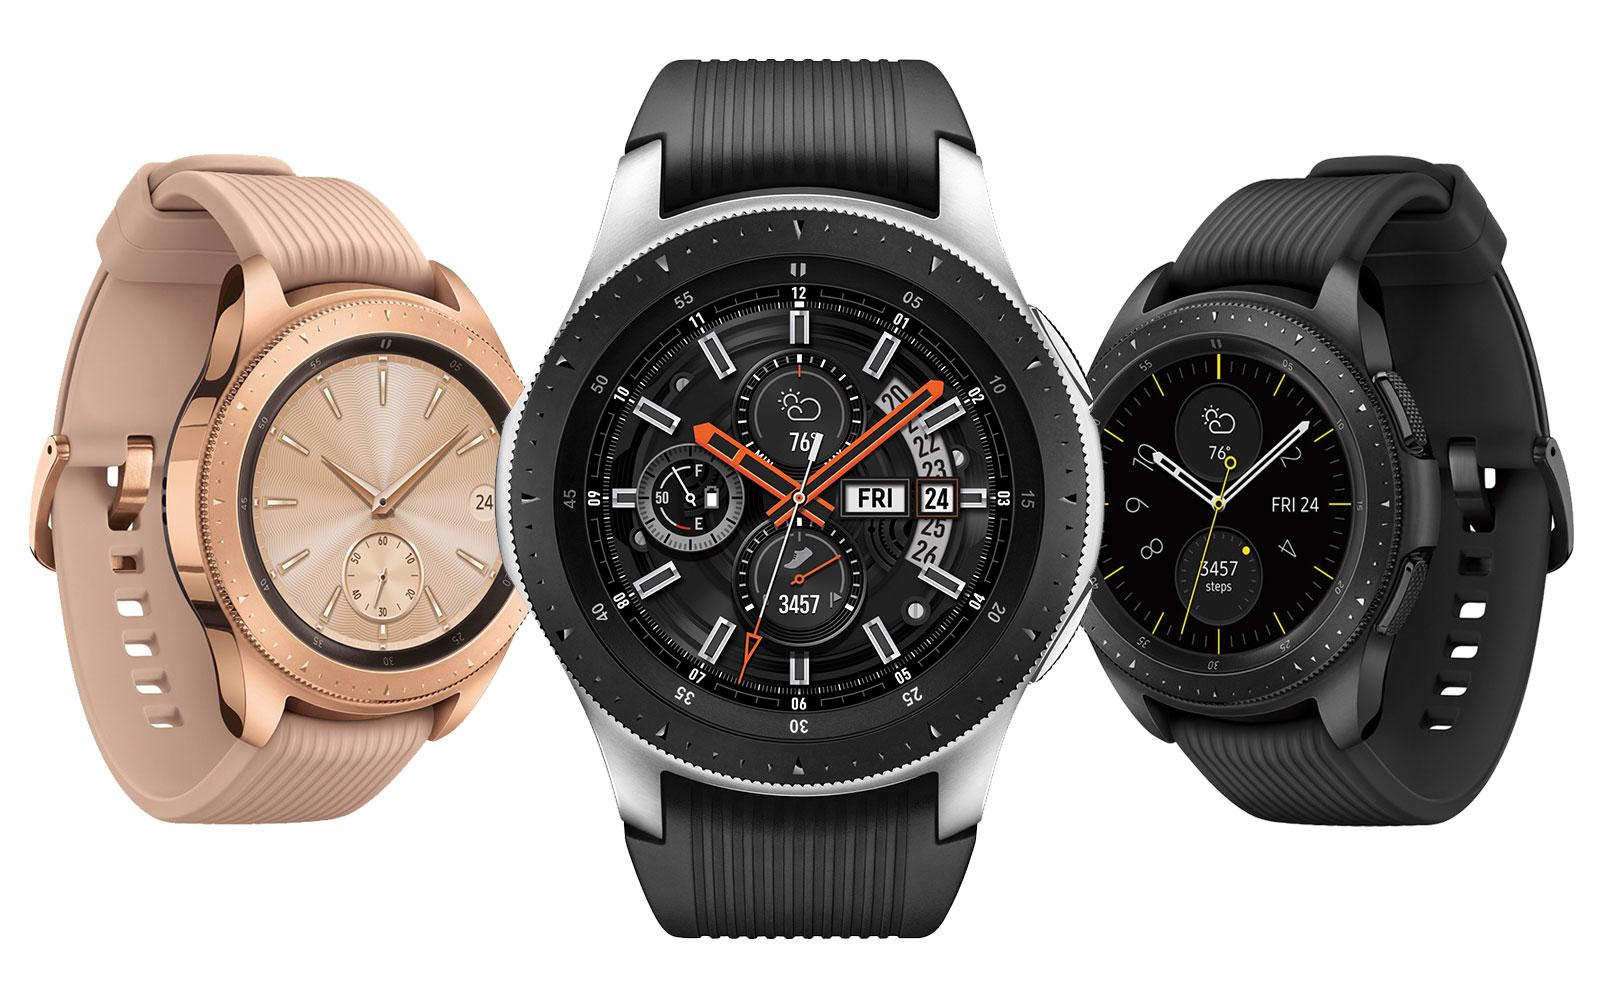 For Android Users: Samsung Galaxy Watch